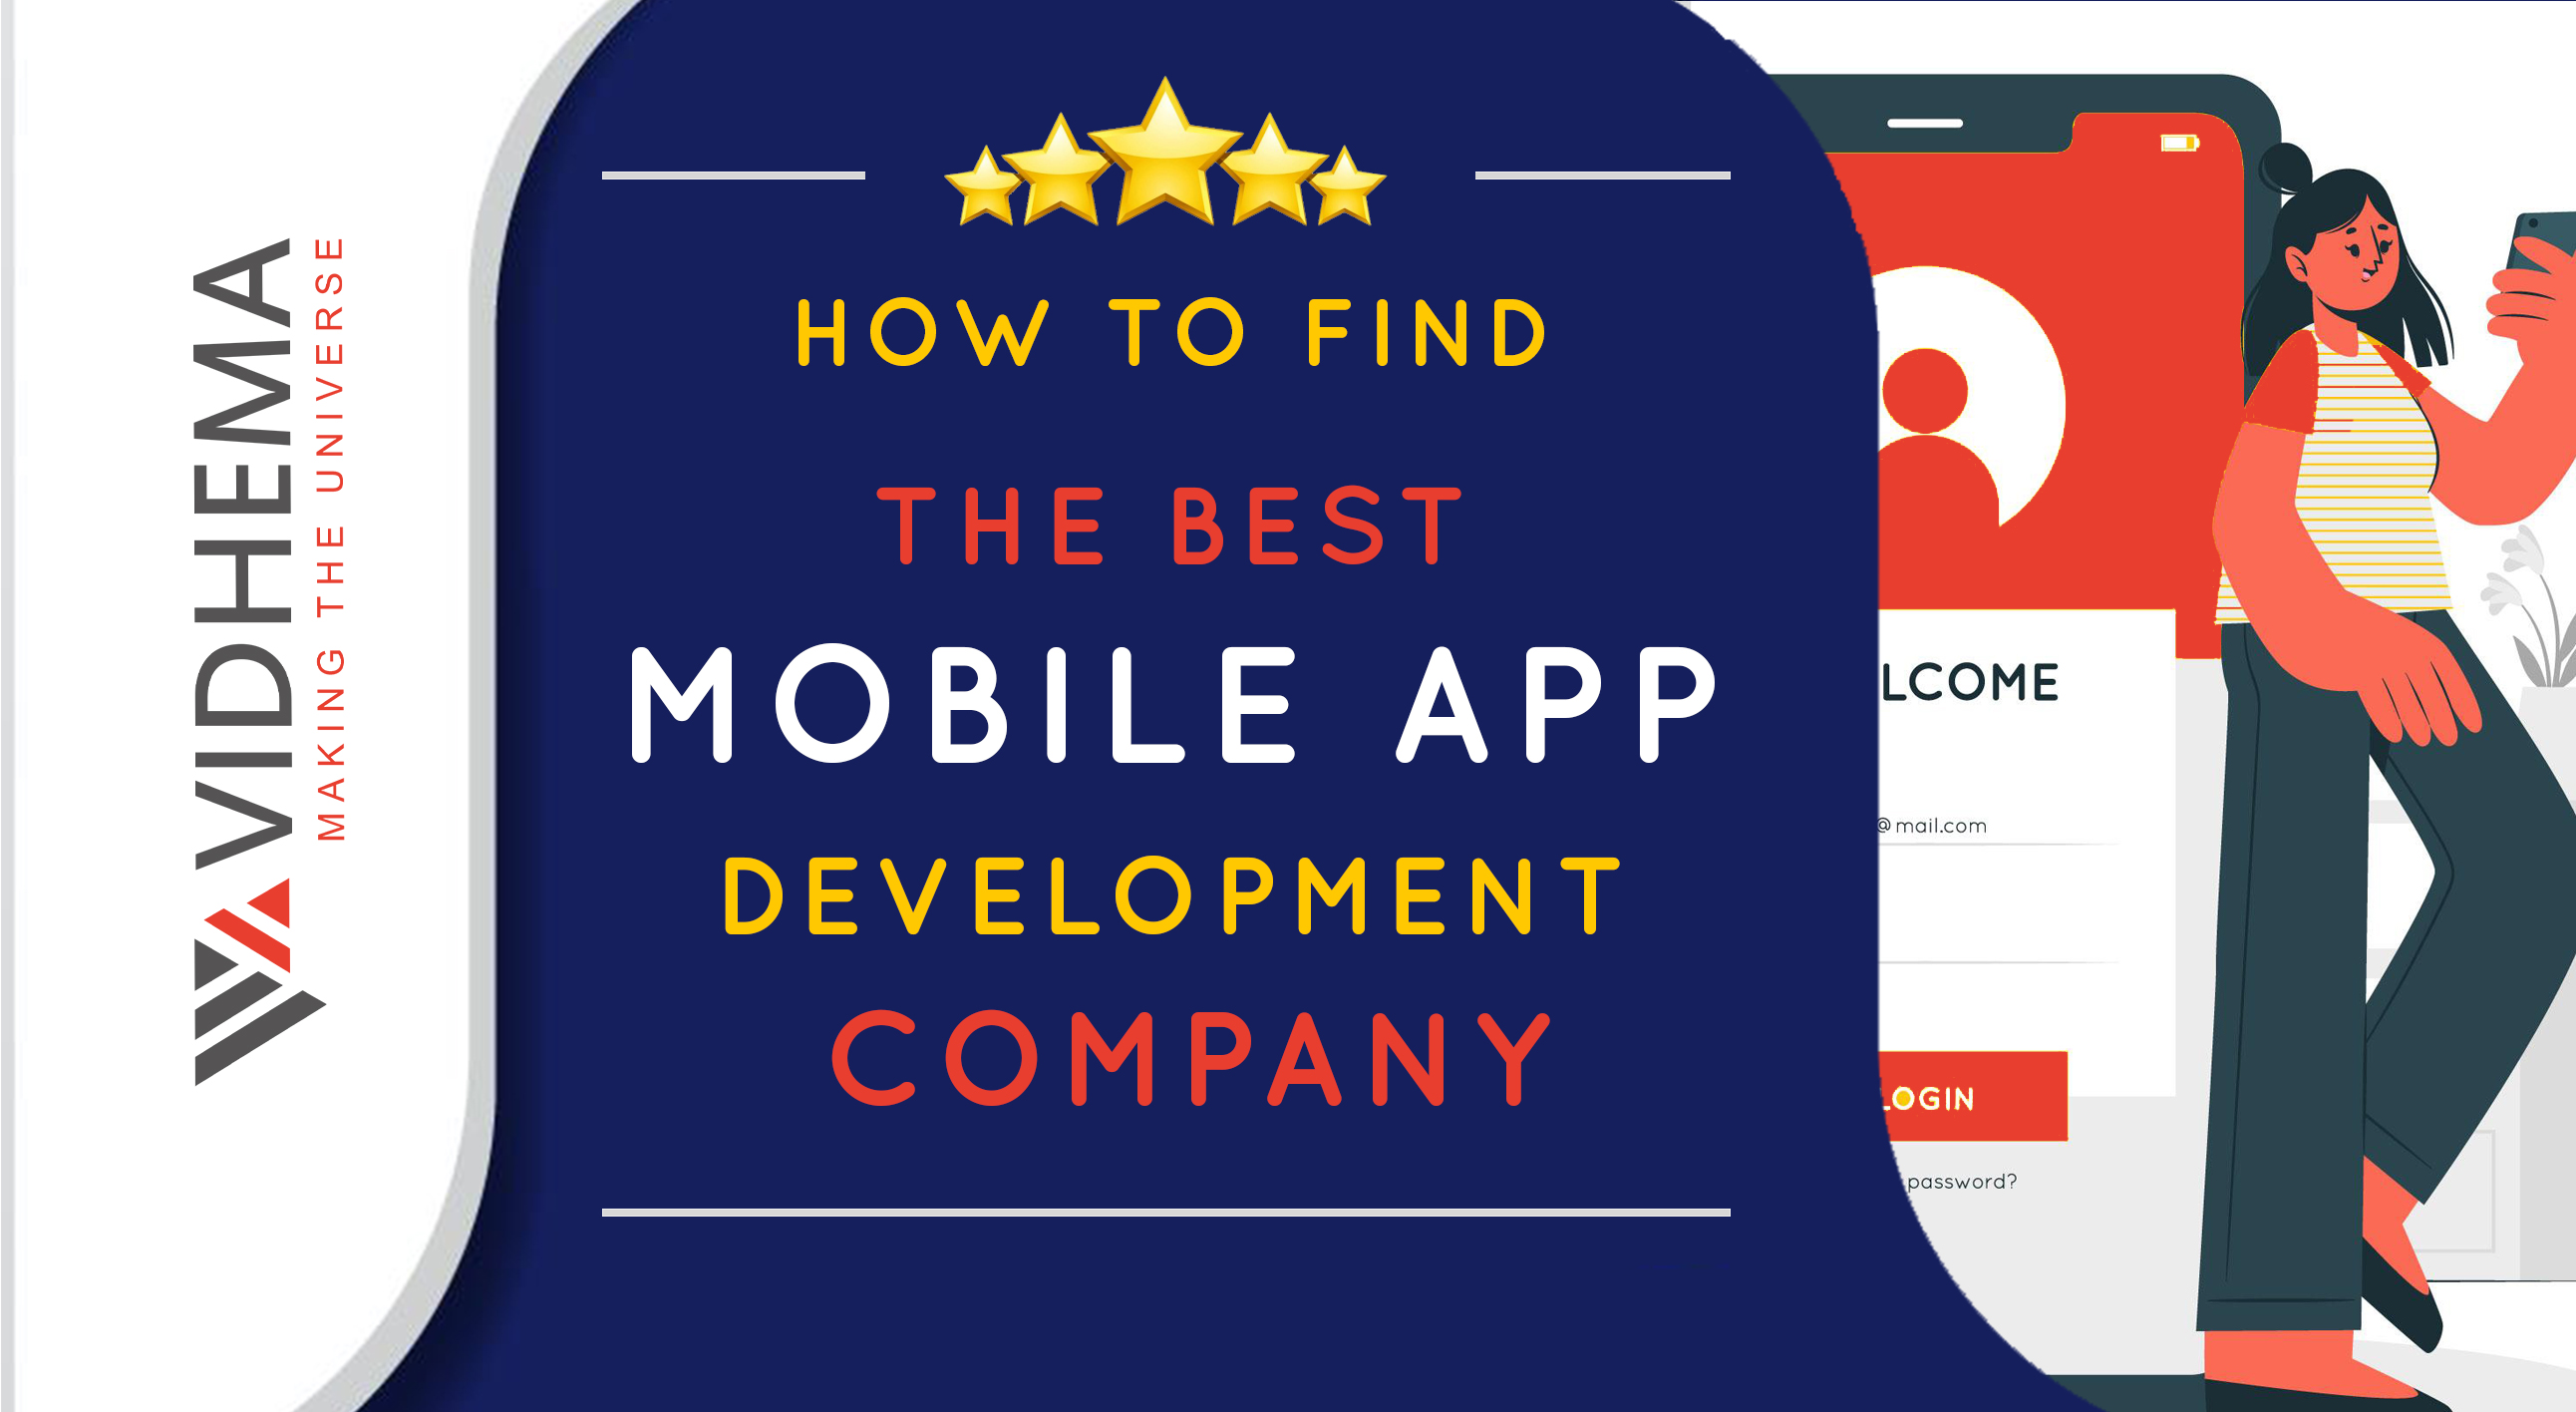 How To Find The Best Mobile App Development Company?